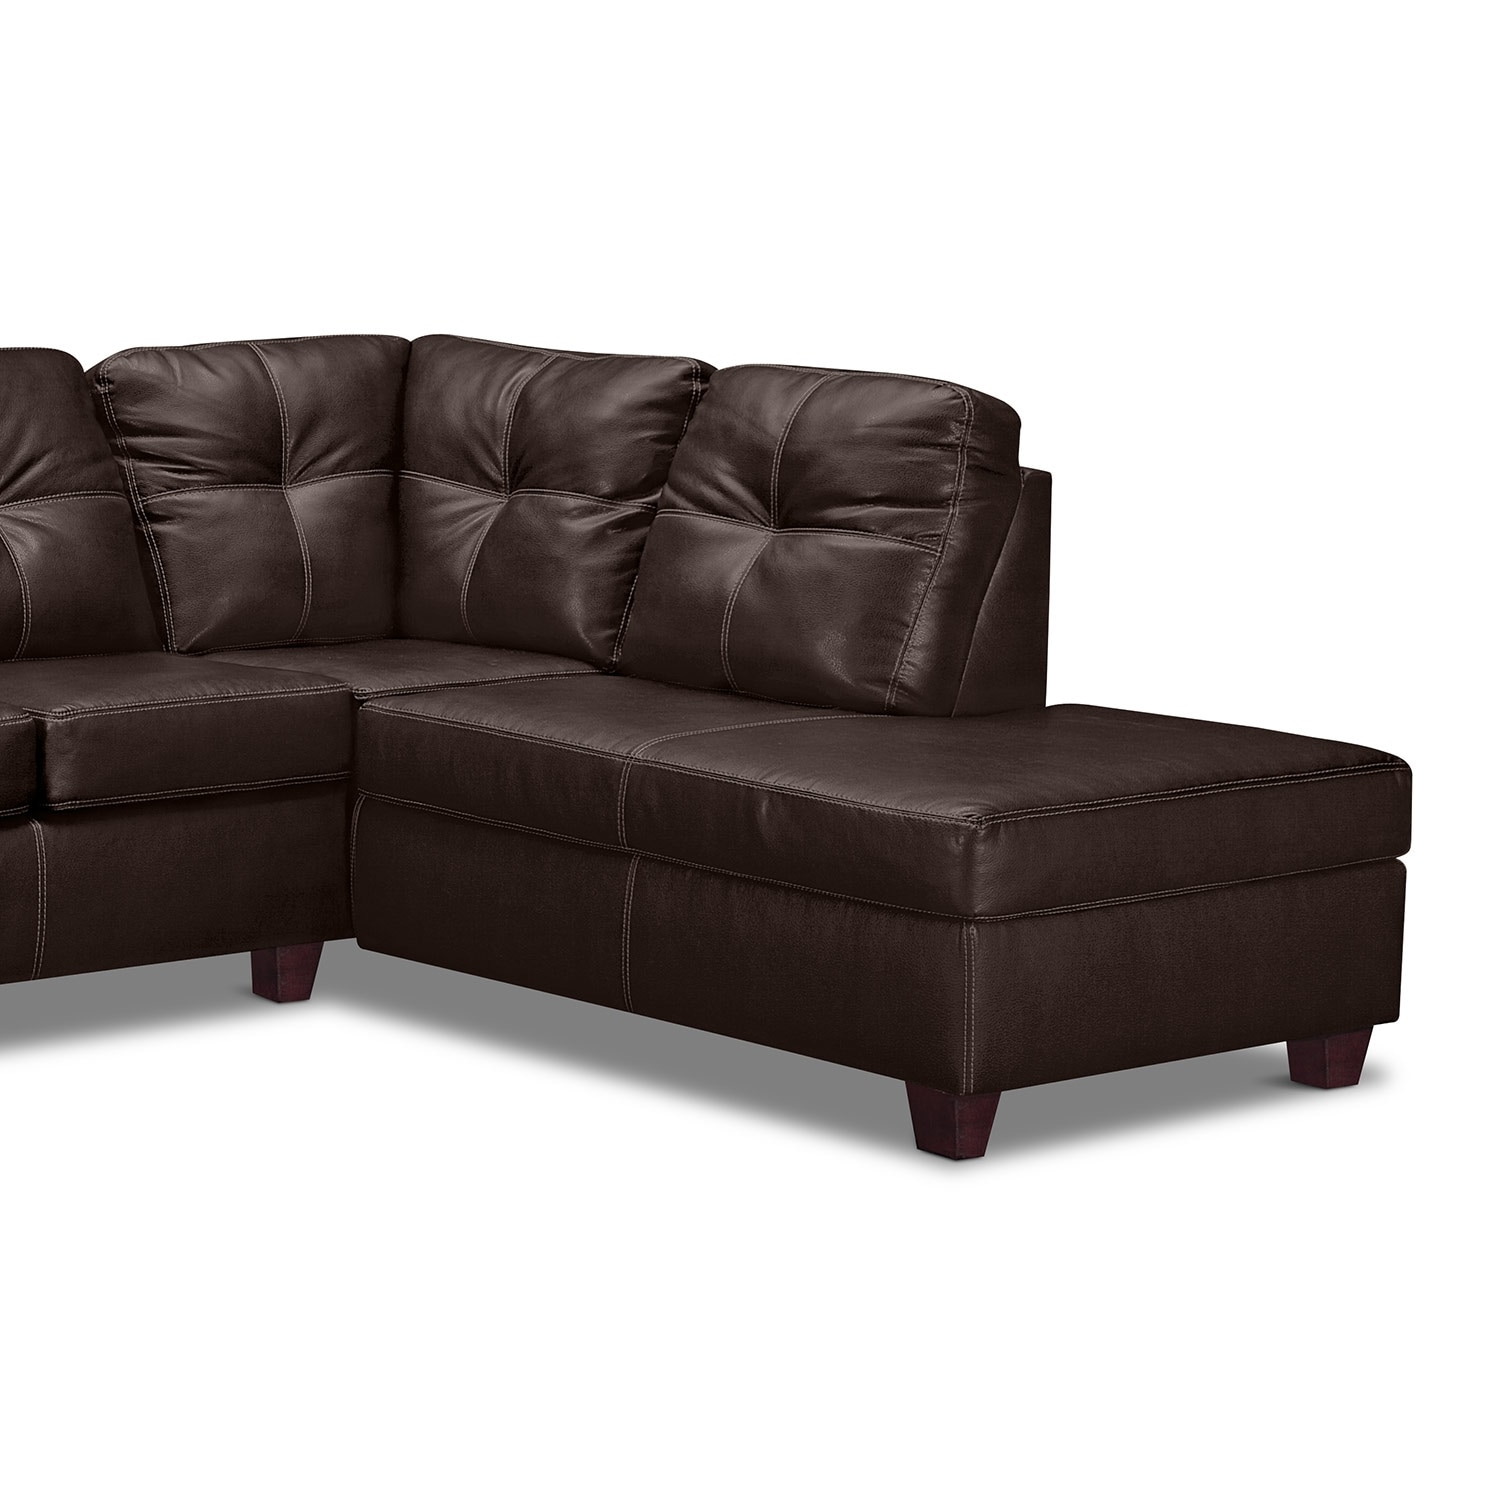 value city furniture marco chaise sofa cheap bed in manila living room domino 2 pc sectional reverse